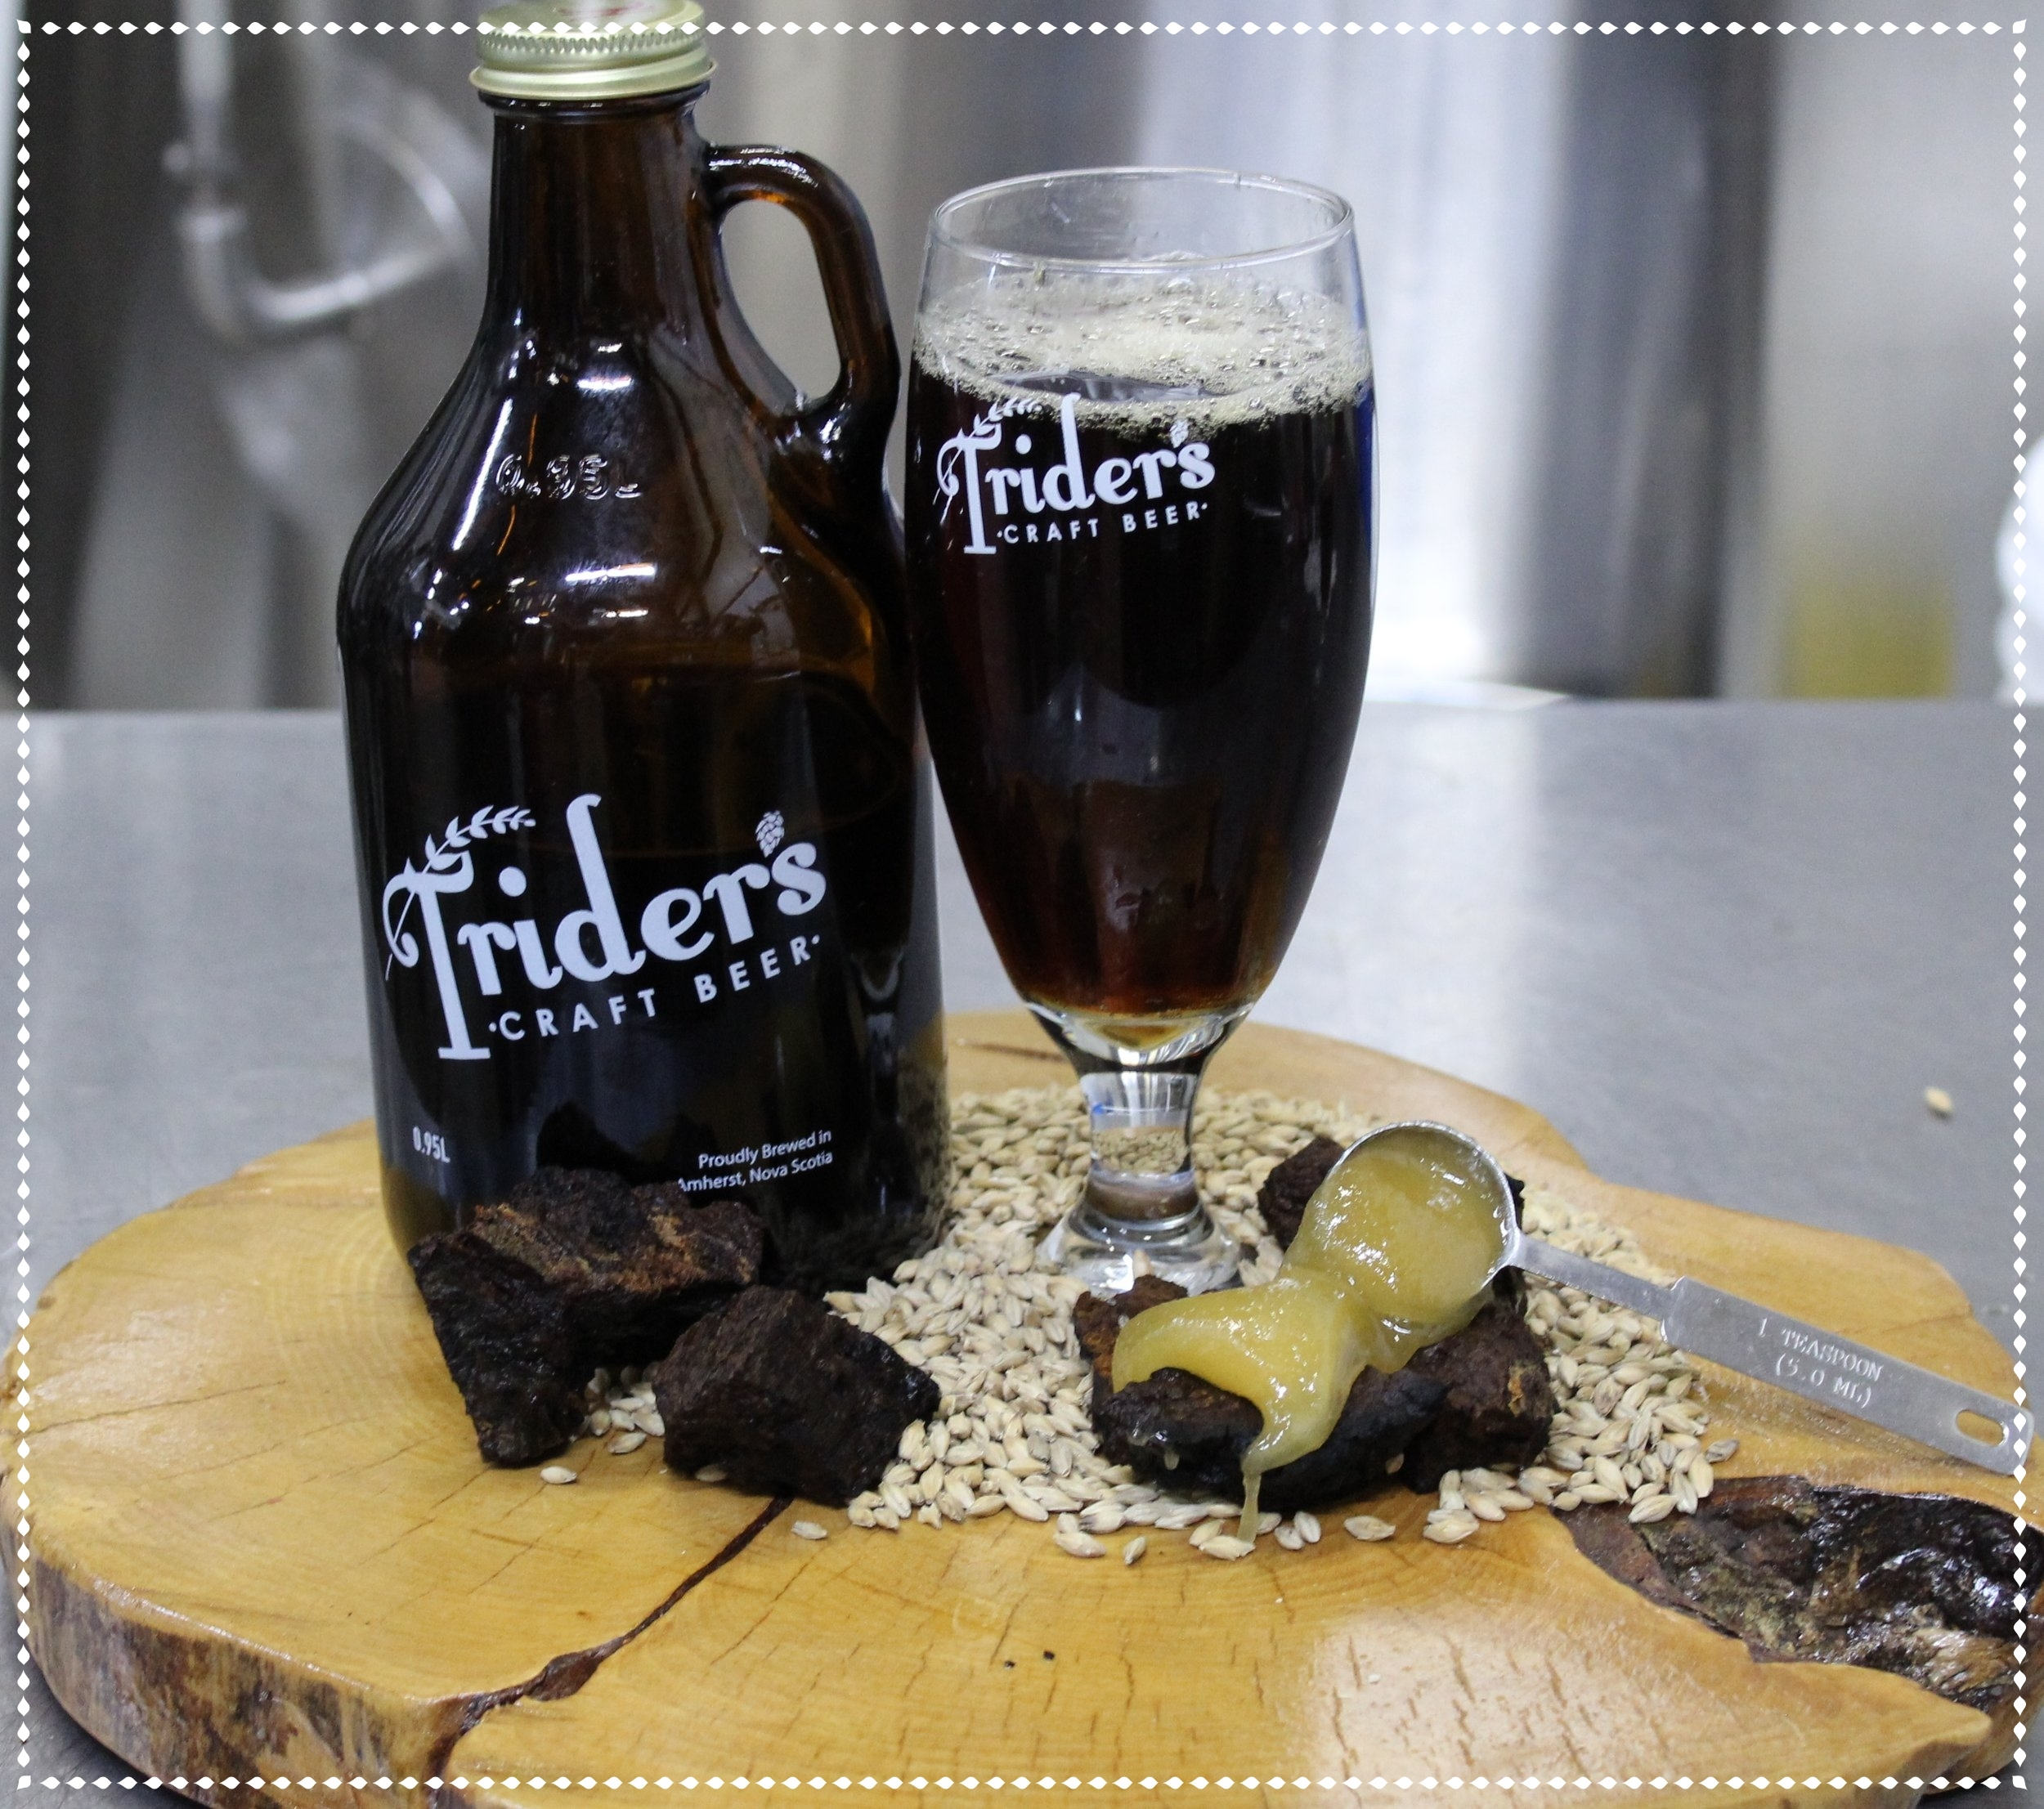 Chaga-Lug That New Brown Ale - Introducing the newest addition to the Trider's Line-up; Honey Chaga-Lug Brown Ale. An earthy yet sweet Brown Ale that is heavy on the Chaga! We are pumped to have used local honey, Chaga, and hops in this brew and invite you to come give it a try!! We are stocked with Growlers and Grunters. 500ml bottles soon to come!